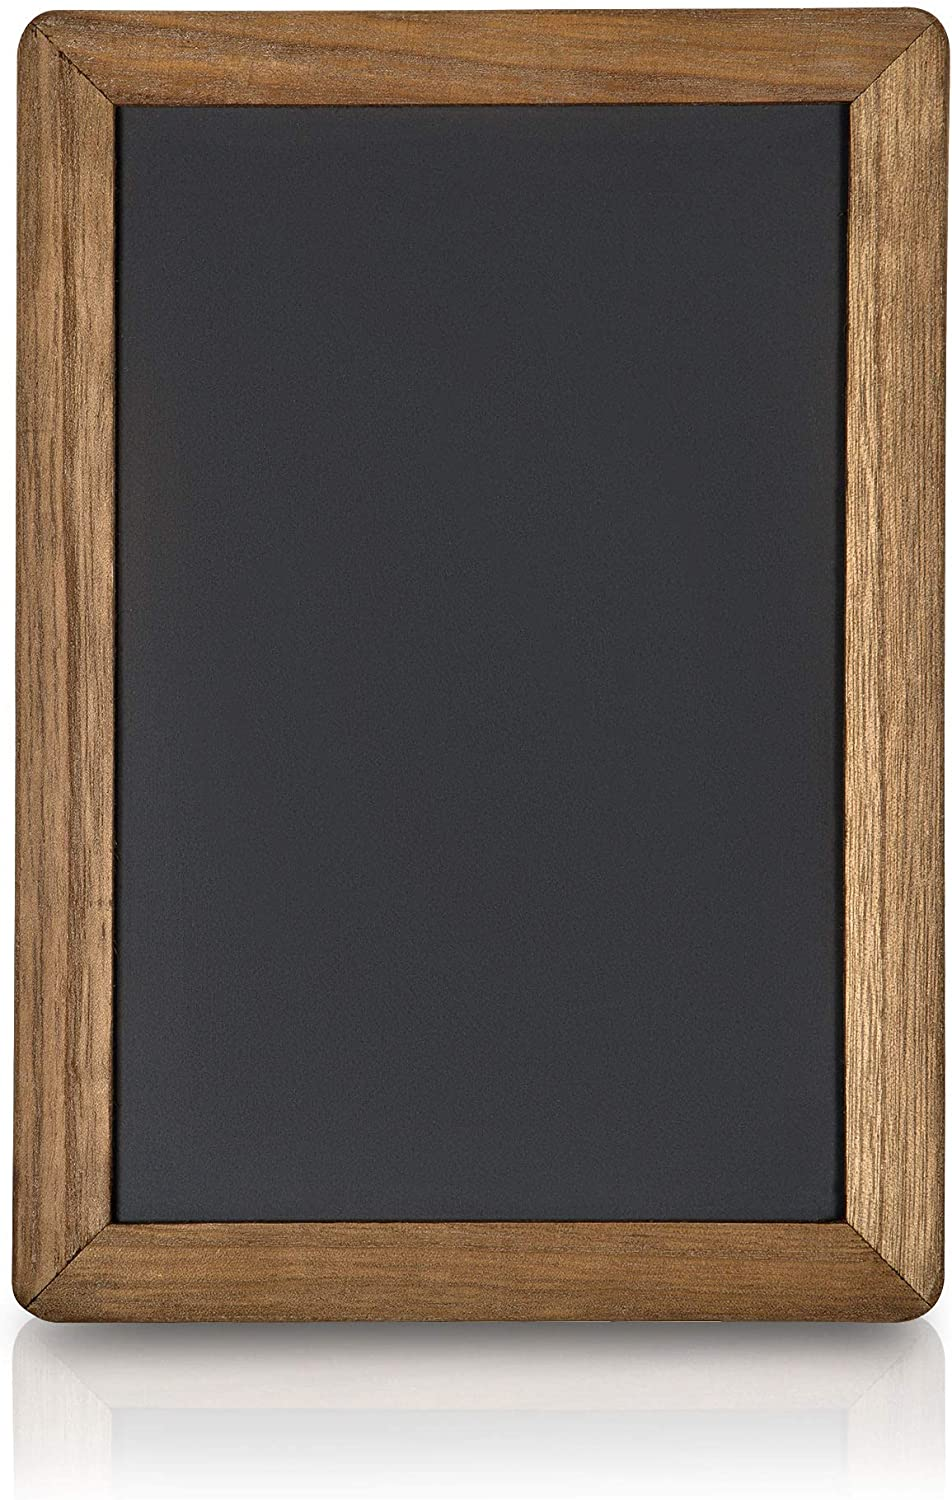 Amazon Com Rustic Magnetic Chalk Boards With Frame 10x14 Magnetic Surface Double Sided Wet Erase Small Chalkboard Signs For Bistro Signs Kitchen Business Restaurant Menu Wedding Decor Office Products